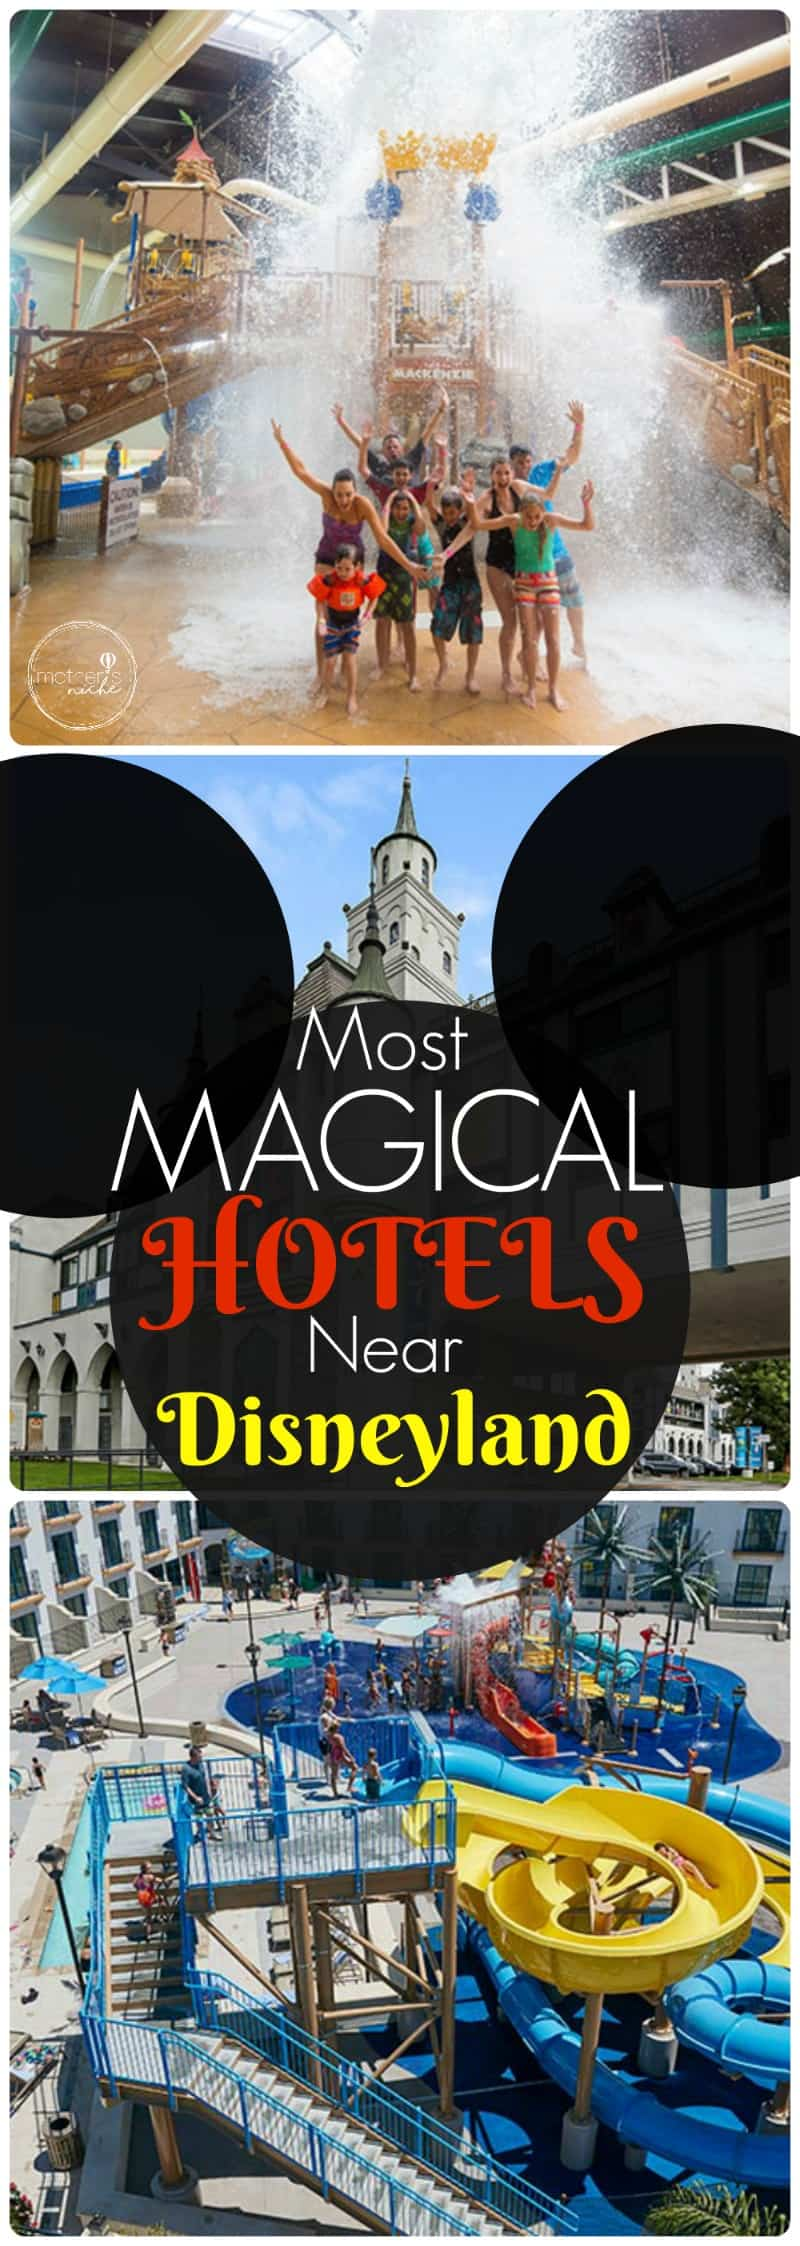 Magical Hotels Near Disneyland